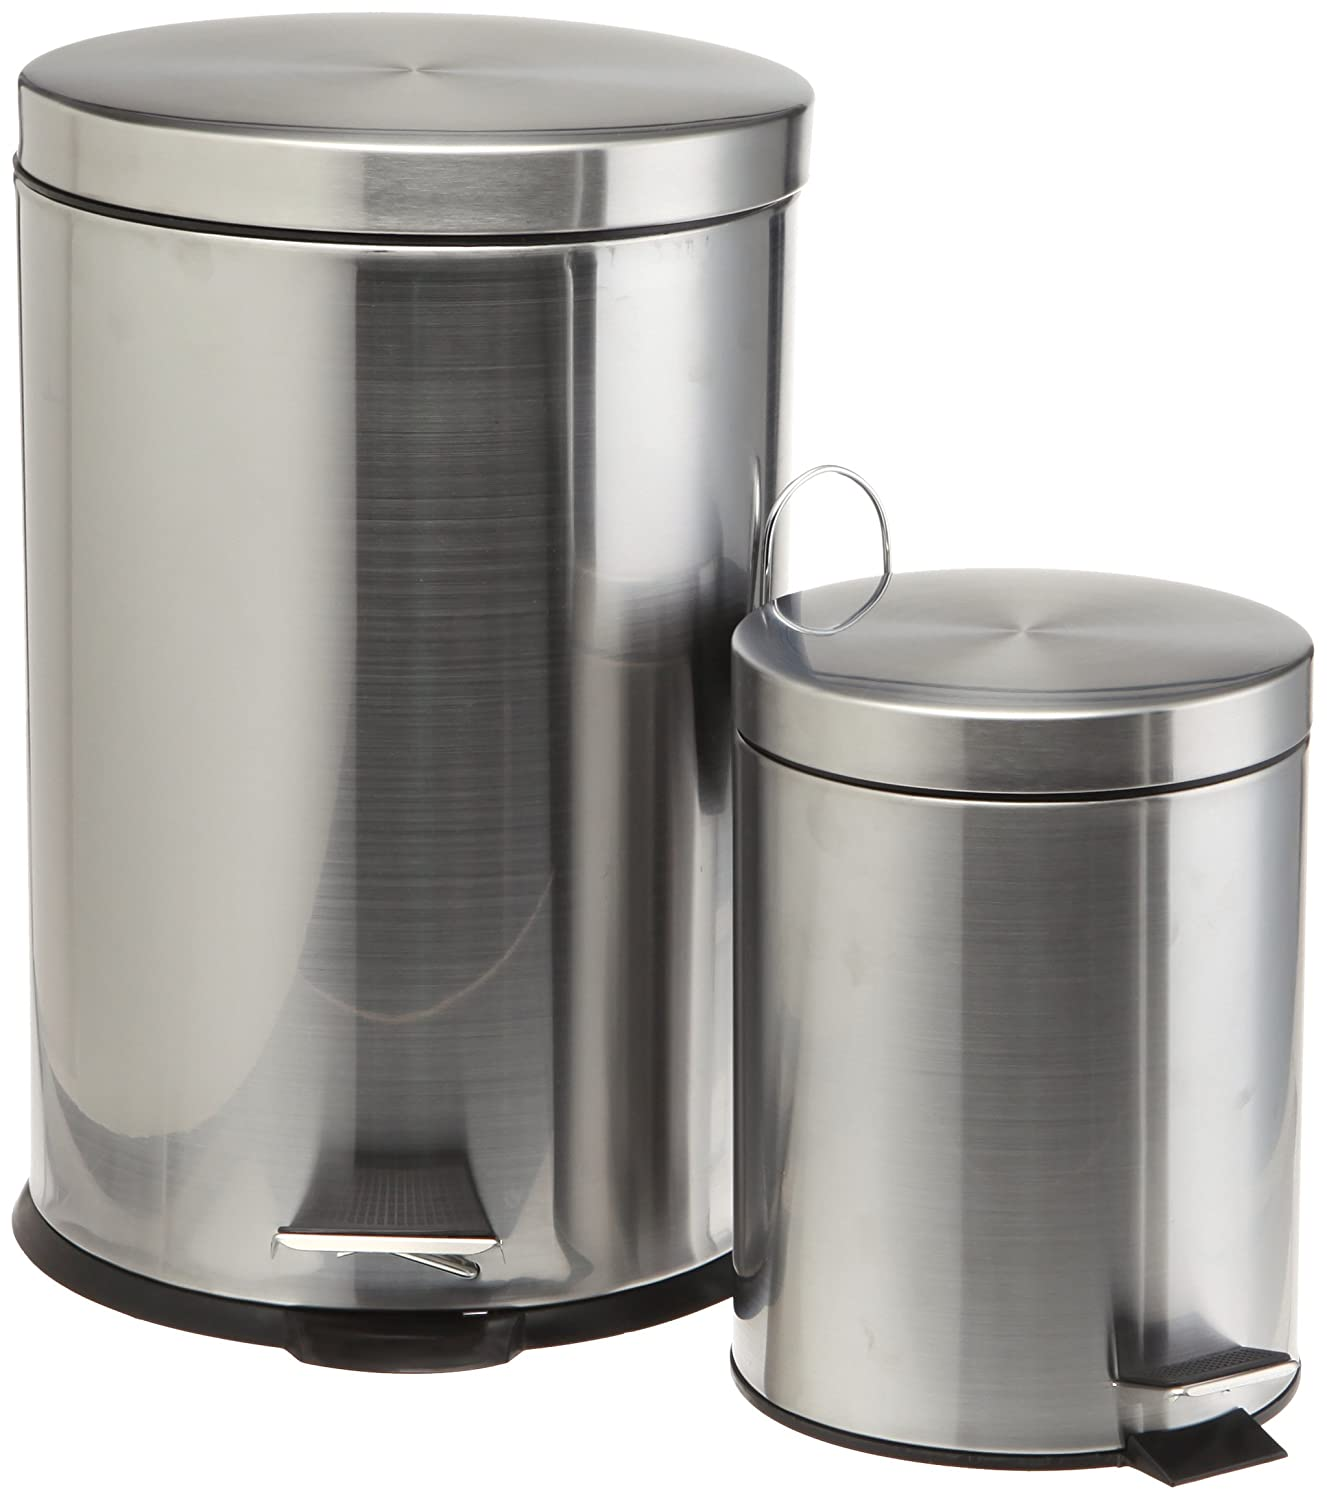 Amazon.com: Prime Pacific Pro Cook Stainless Steel Trash Cans, Set Of 2, 5  And 20 Liter: Home U0026 Kitchen